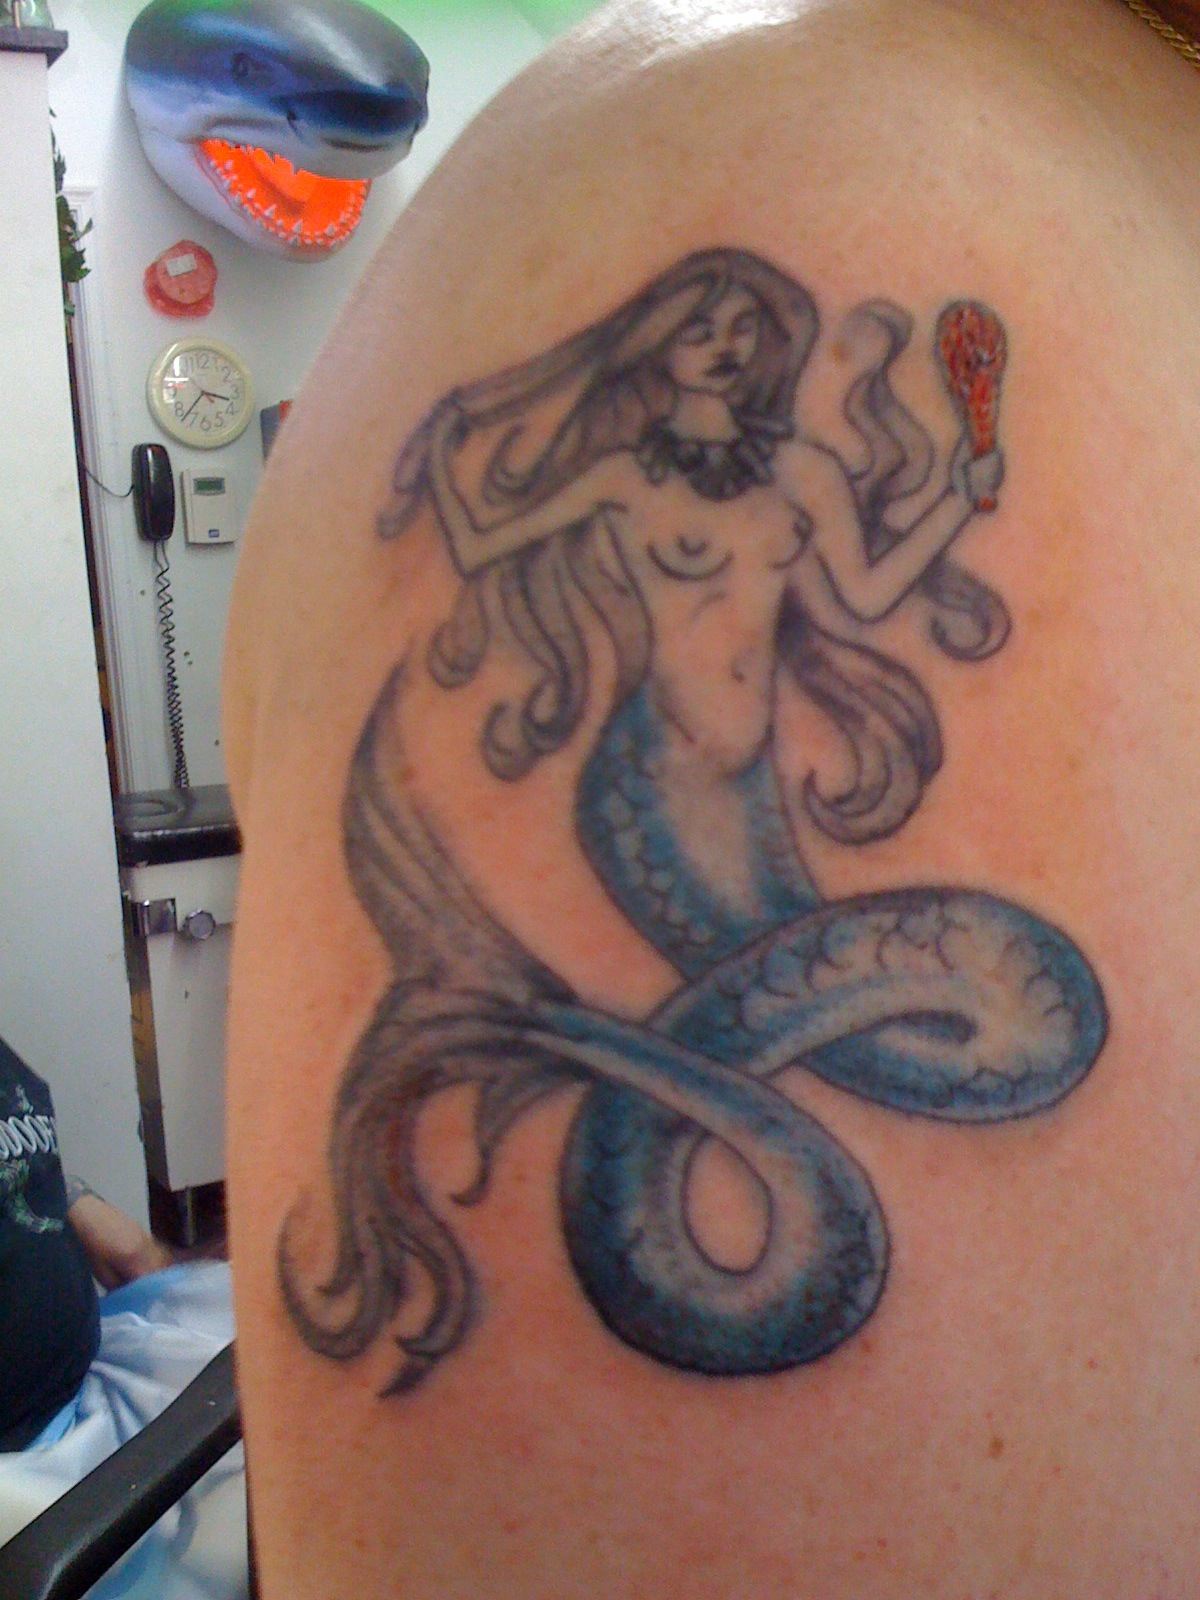 A Tale of Mermaid Tattoos